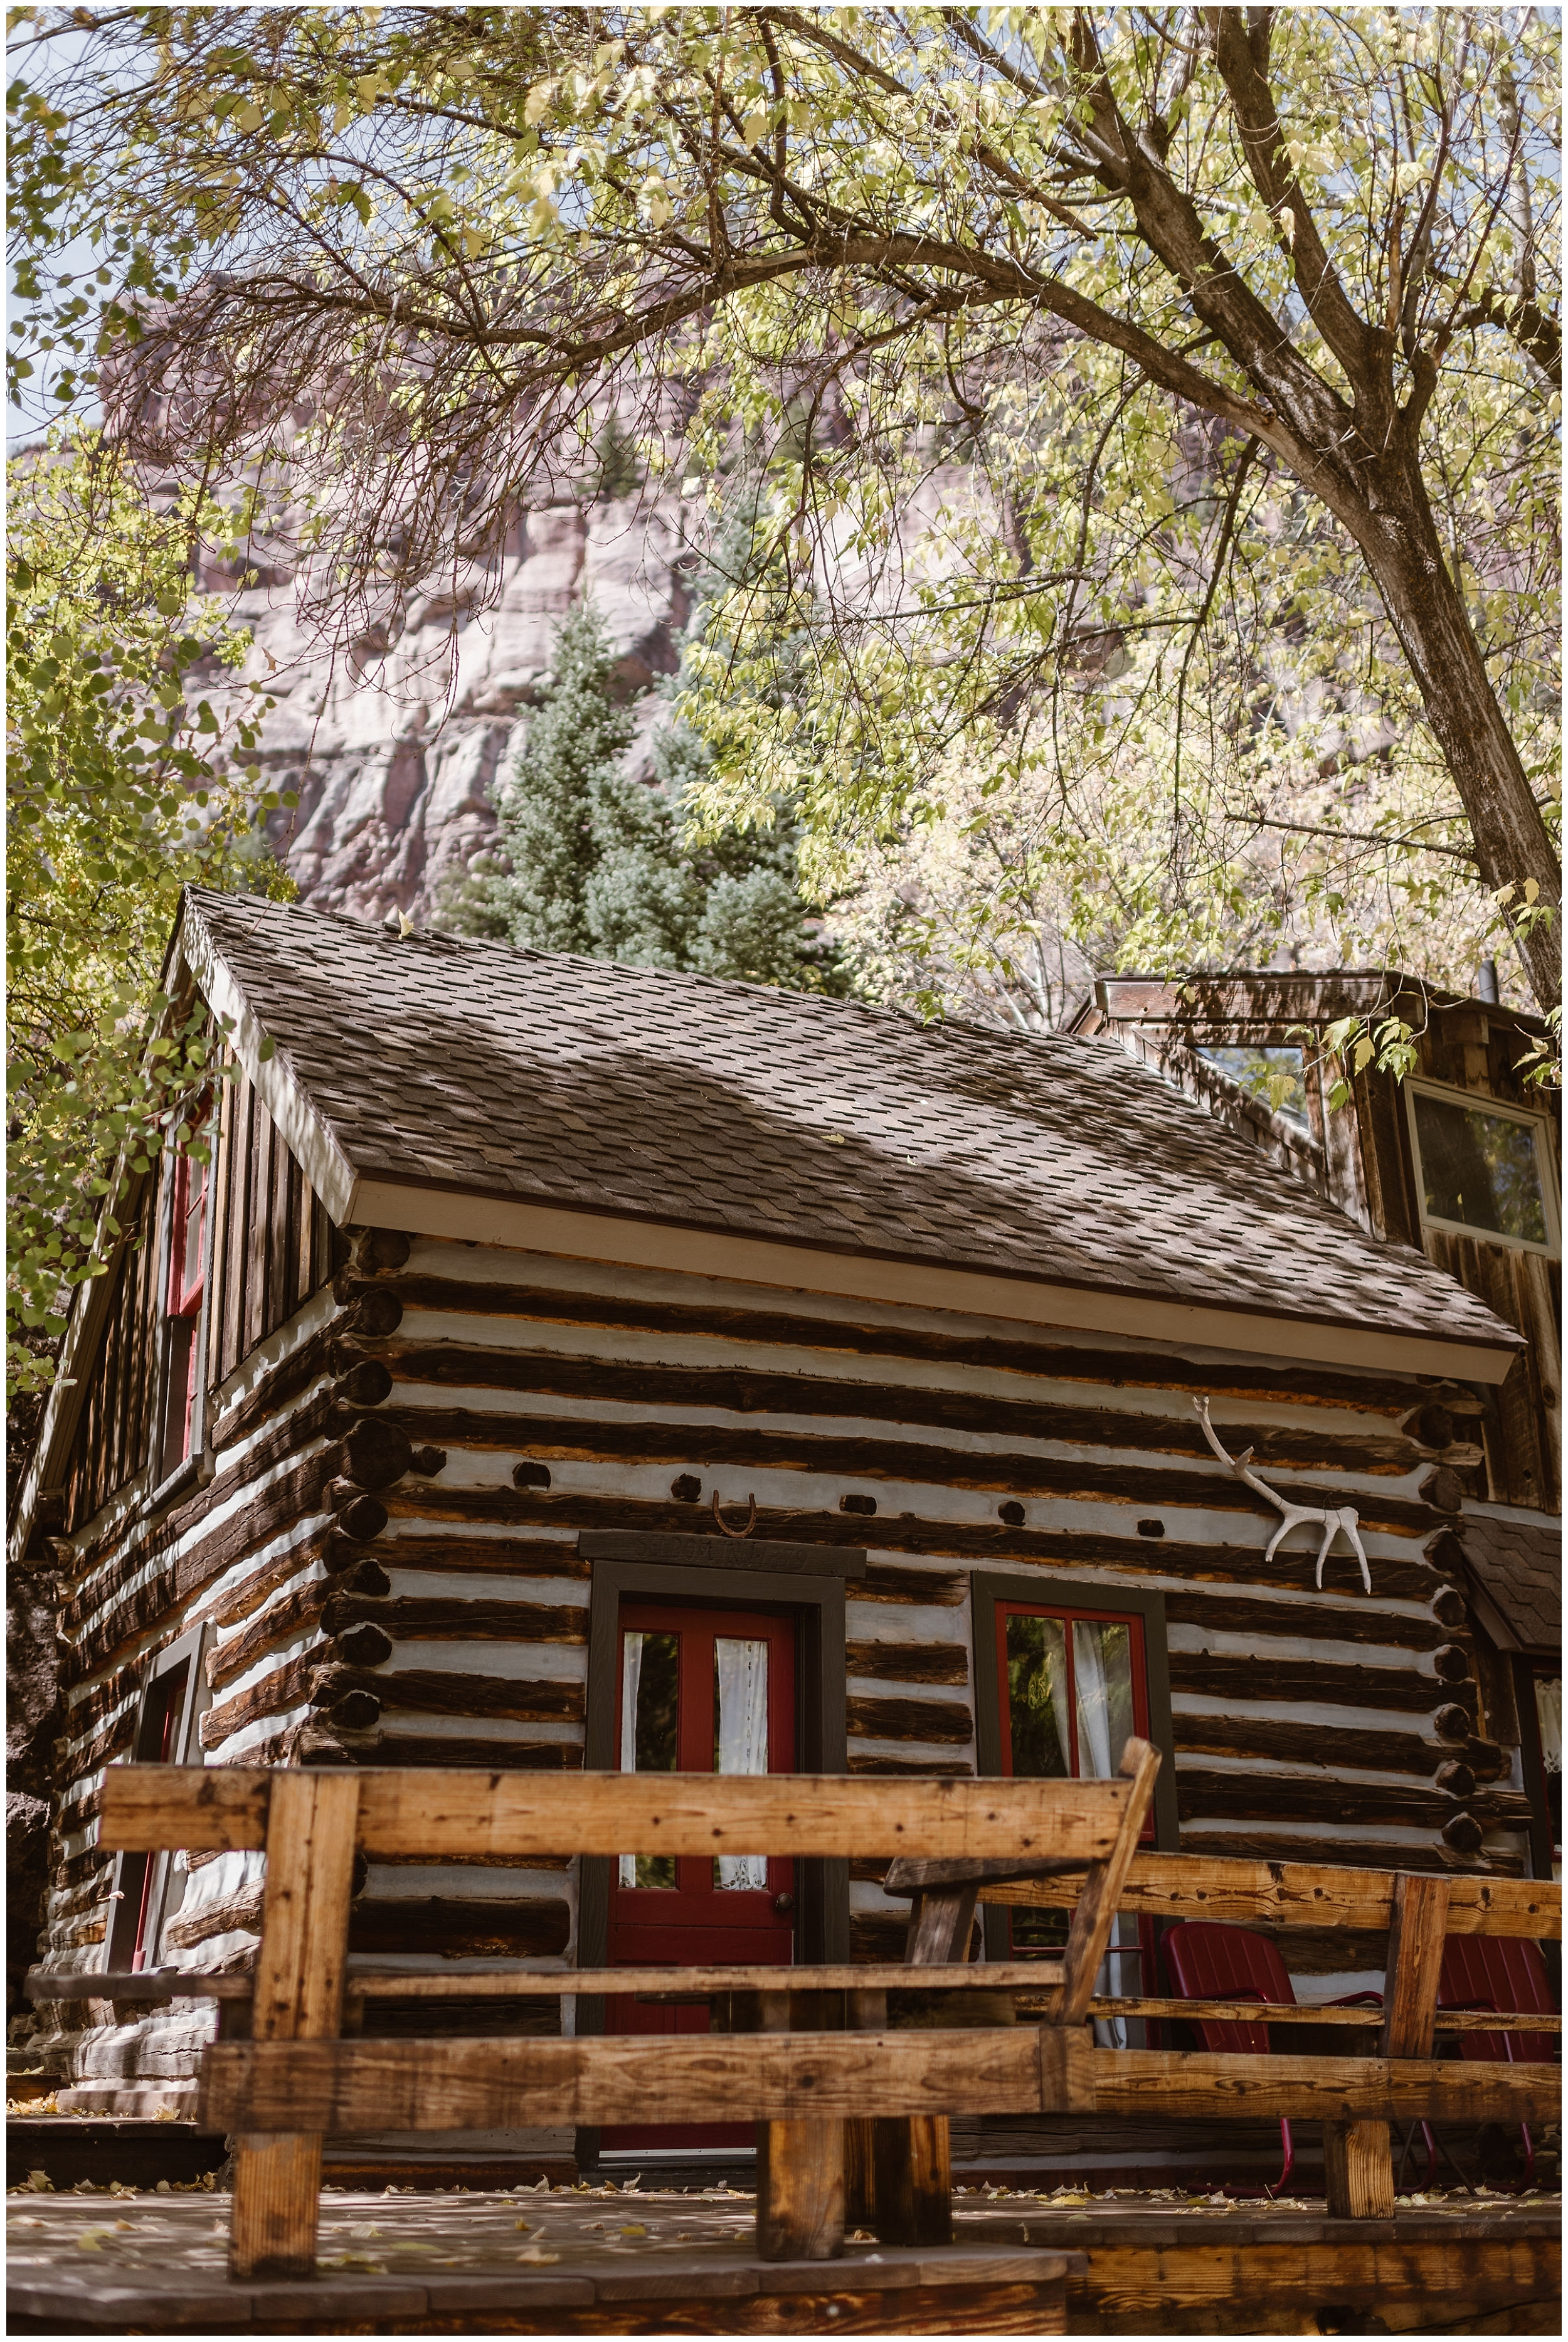 A tiny, crooked cabin is shown in this image captured by elopement wedding photographer Adventure Instead. The cabin, shaded by beautiful trees, is painted white and brown and has a quirky red door. In the background, rocky mountains peek through the trees.